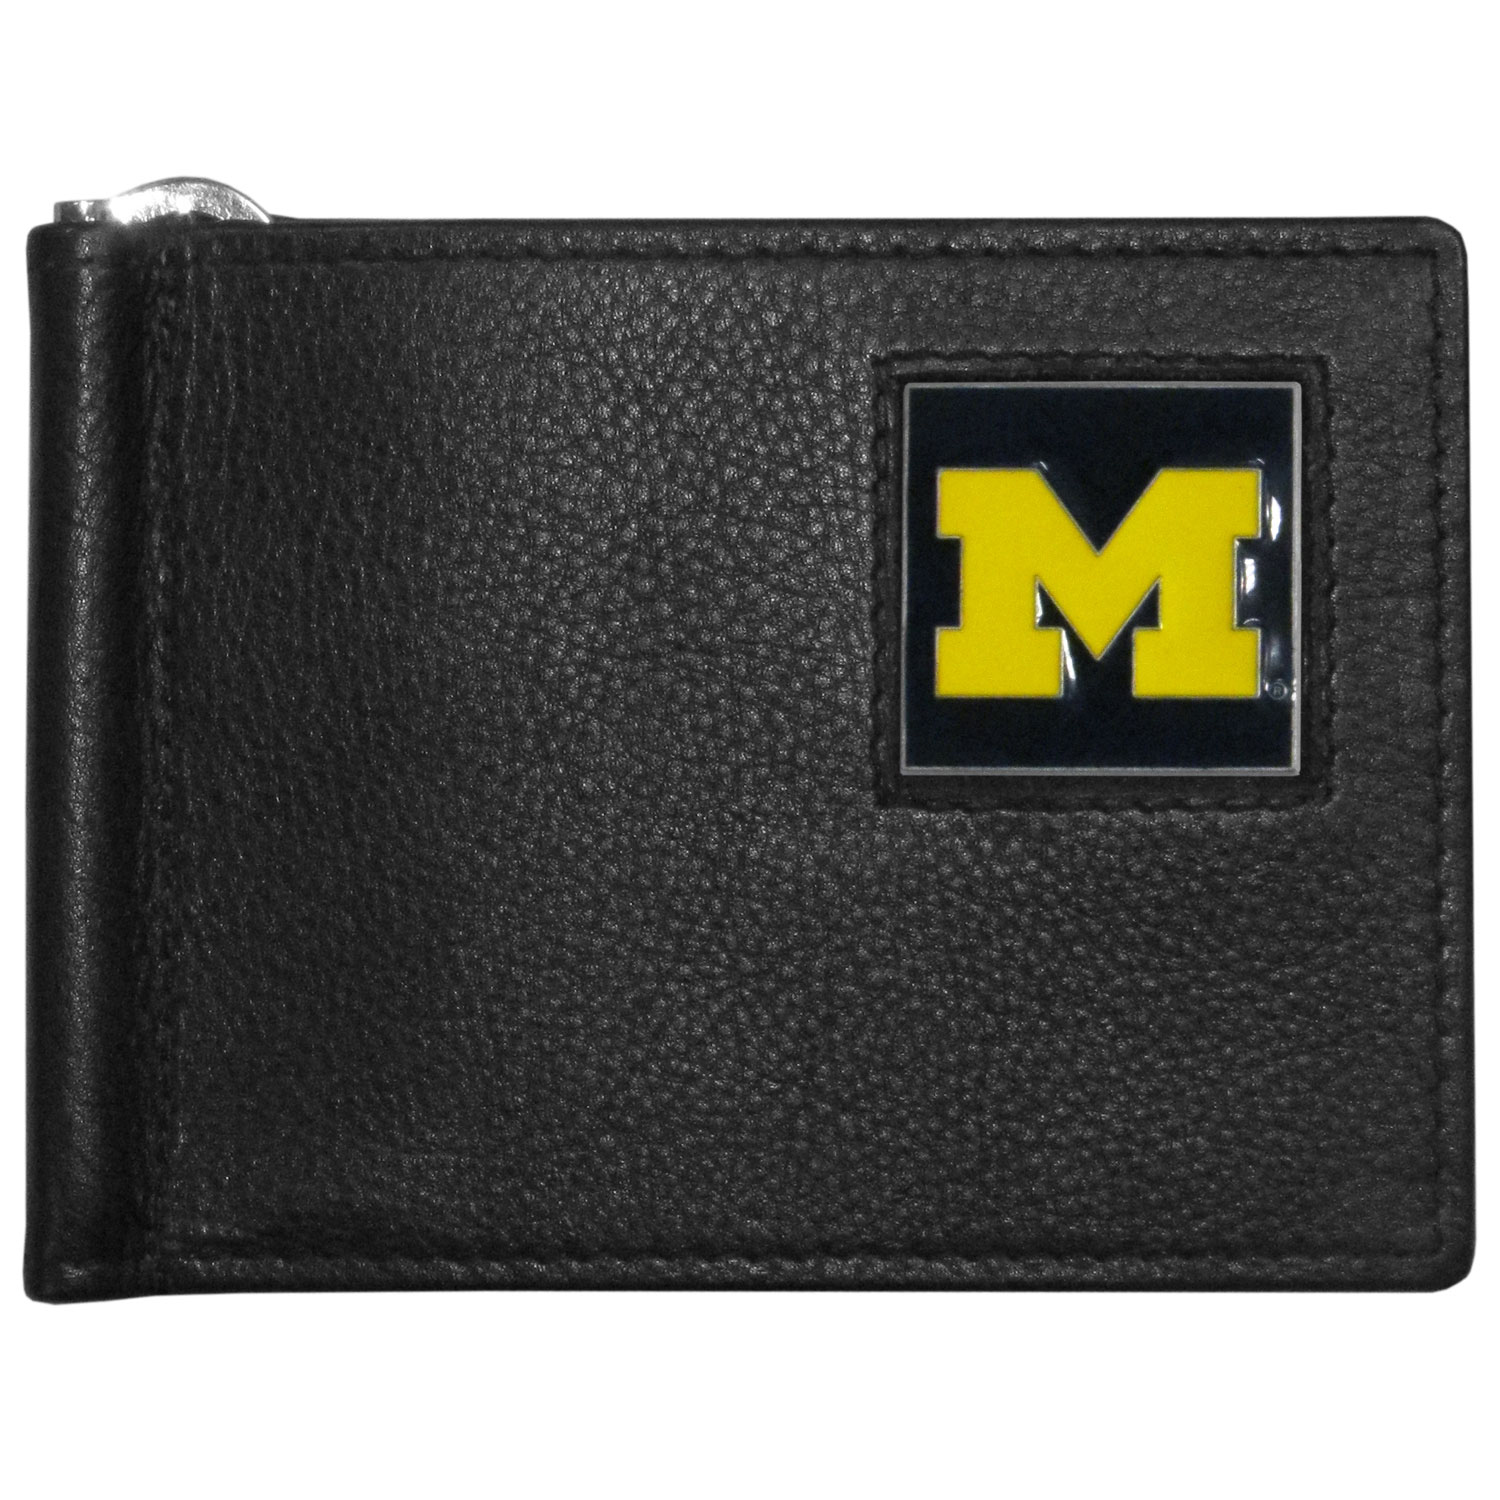 Michigan Wolverines Leather Bill Clip Wallet - This cool new style wallet features an inner, metal bill clip that lips up for easy access. The super slim wallet holds tons of stuff with ample pockets, credit card slots & windowed ID slot. The wallet is made of genuine fine grain leather and it finished with a metal Michigan Wolverines emblem. The wallet is shipped in gift box packaging.